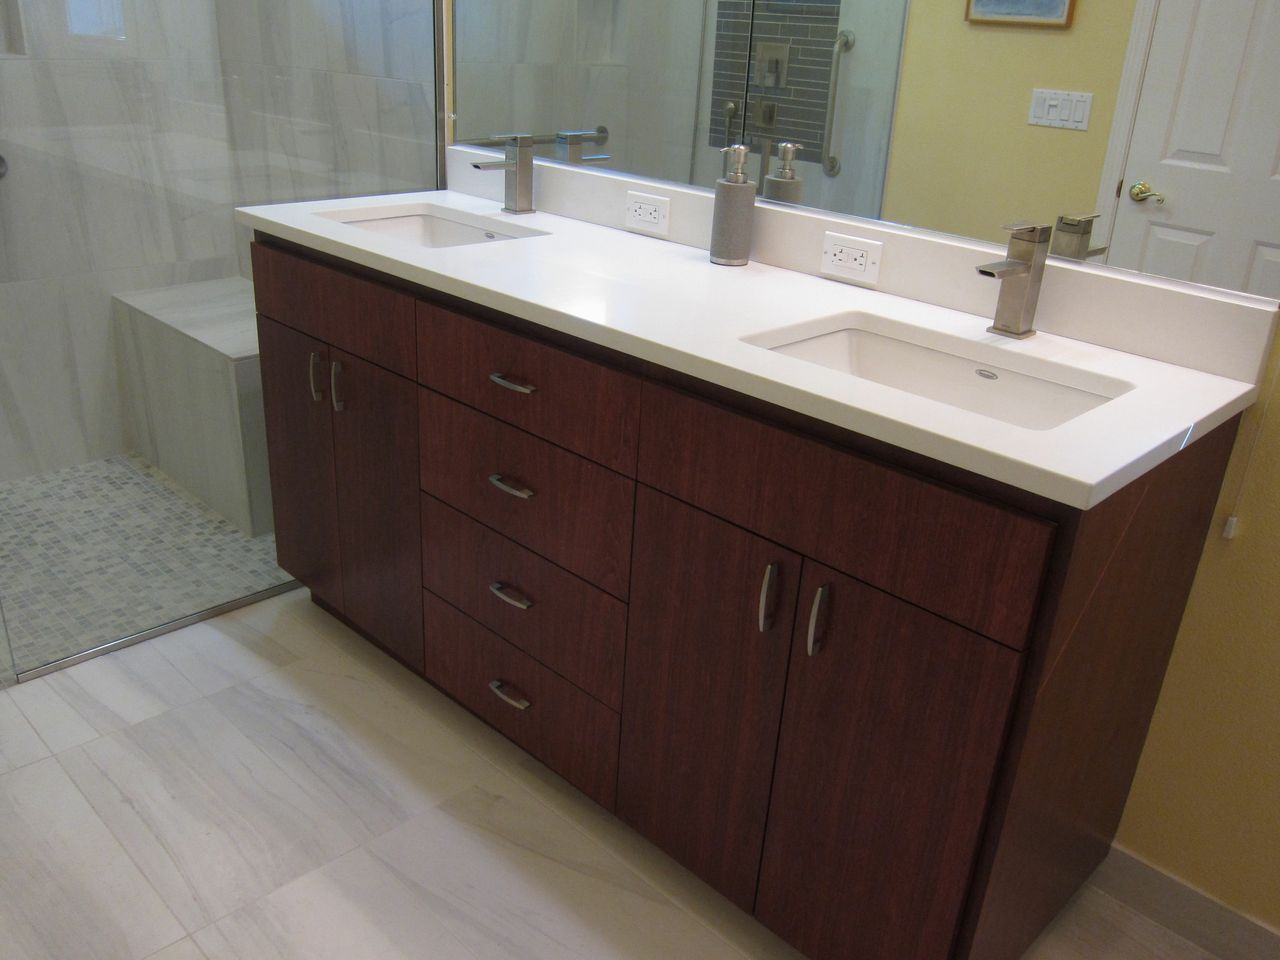 Solid Surface Countertop Options Alex Freddi Construction Llc General Contractor